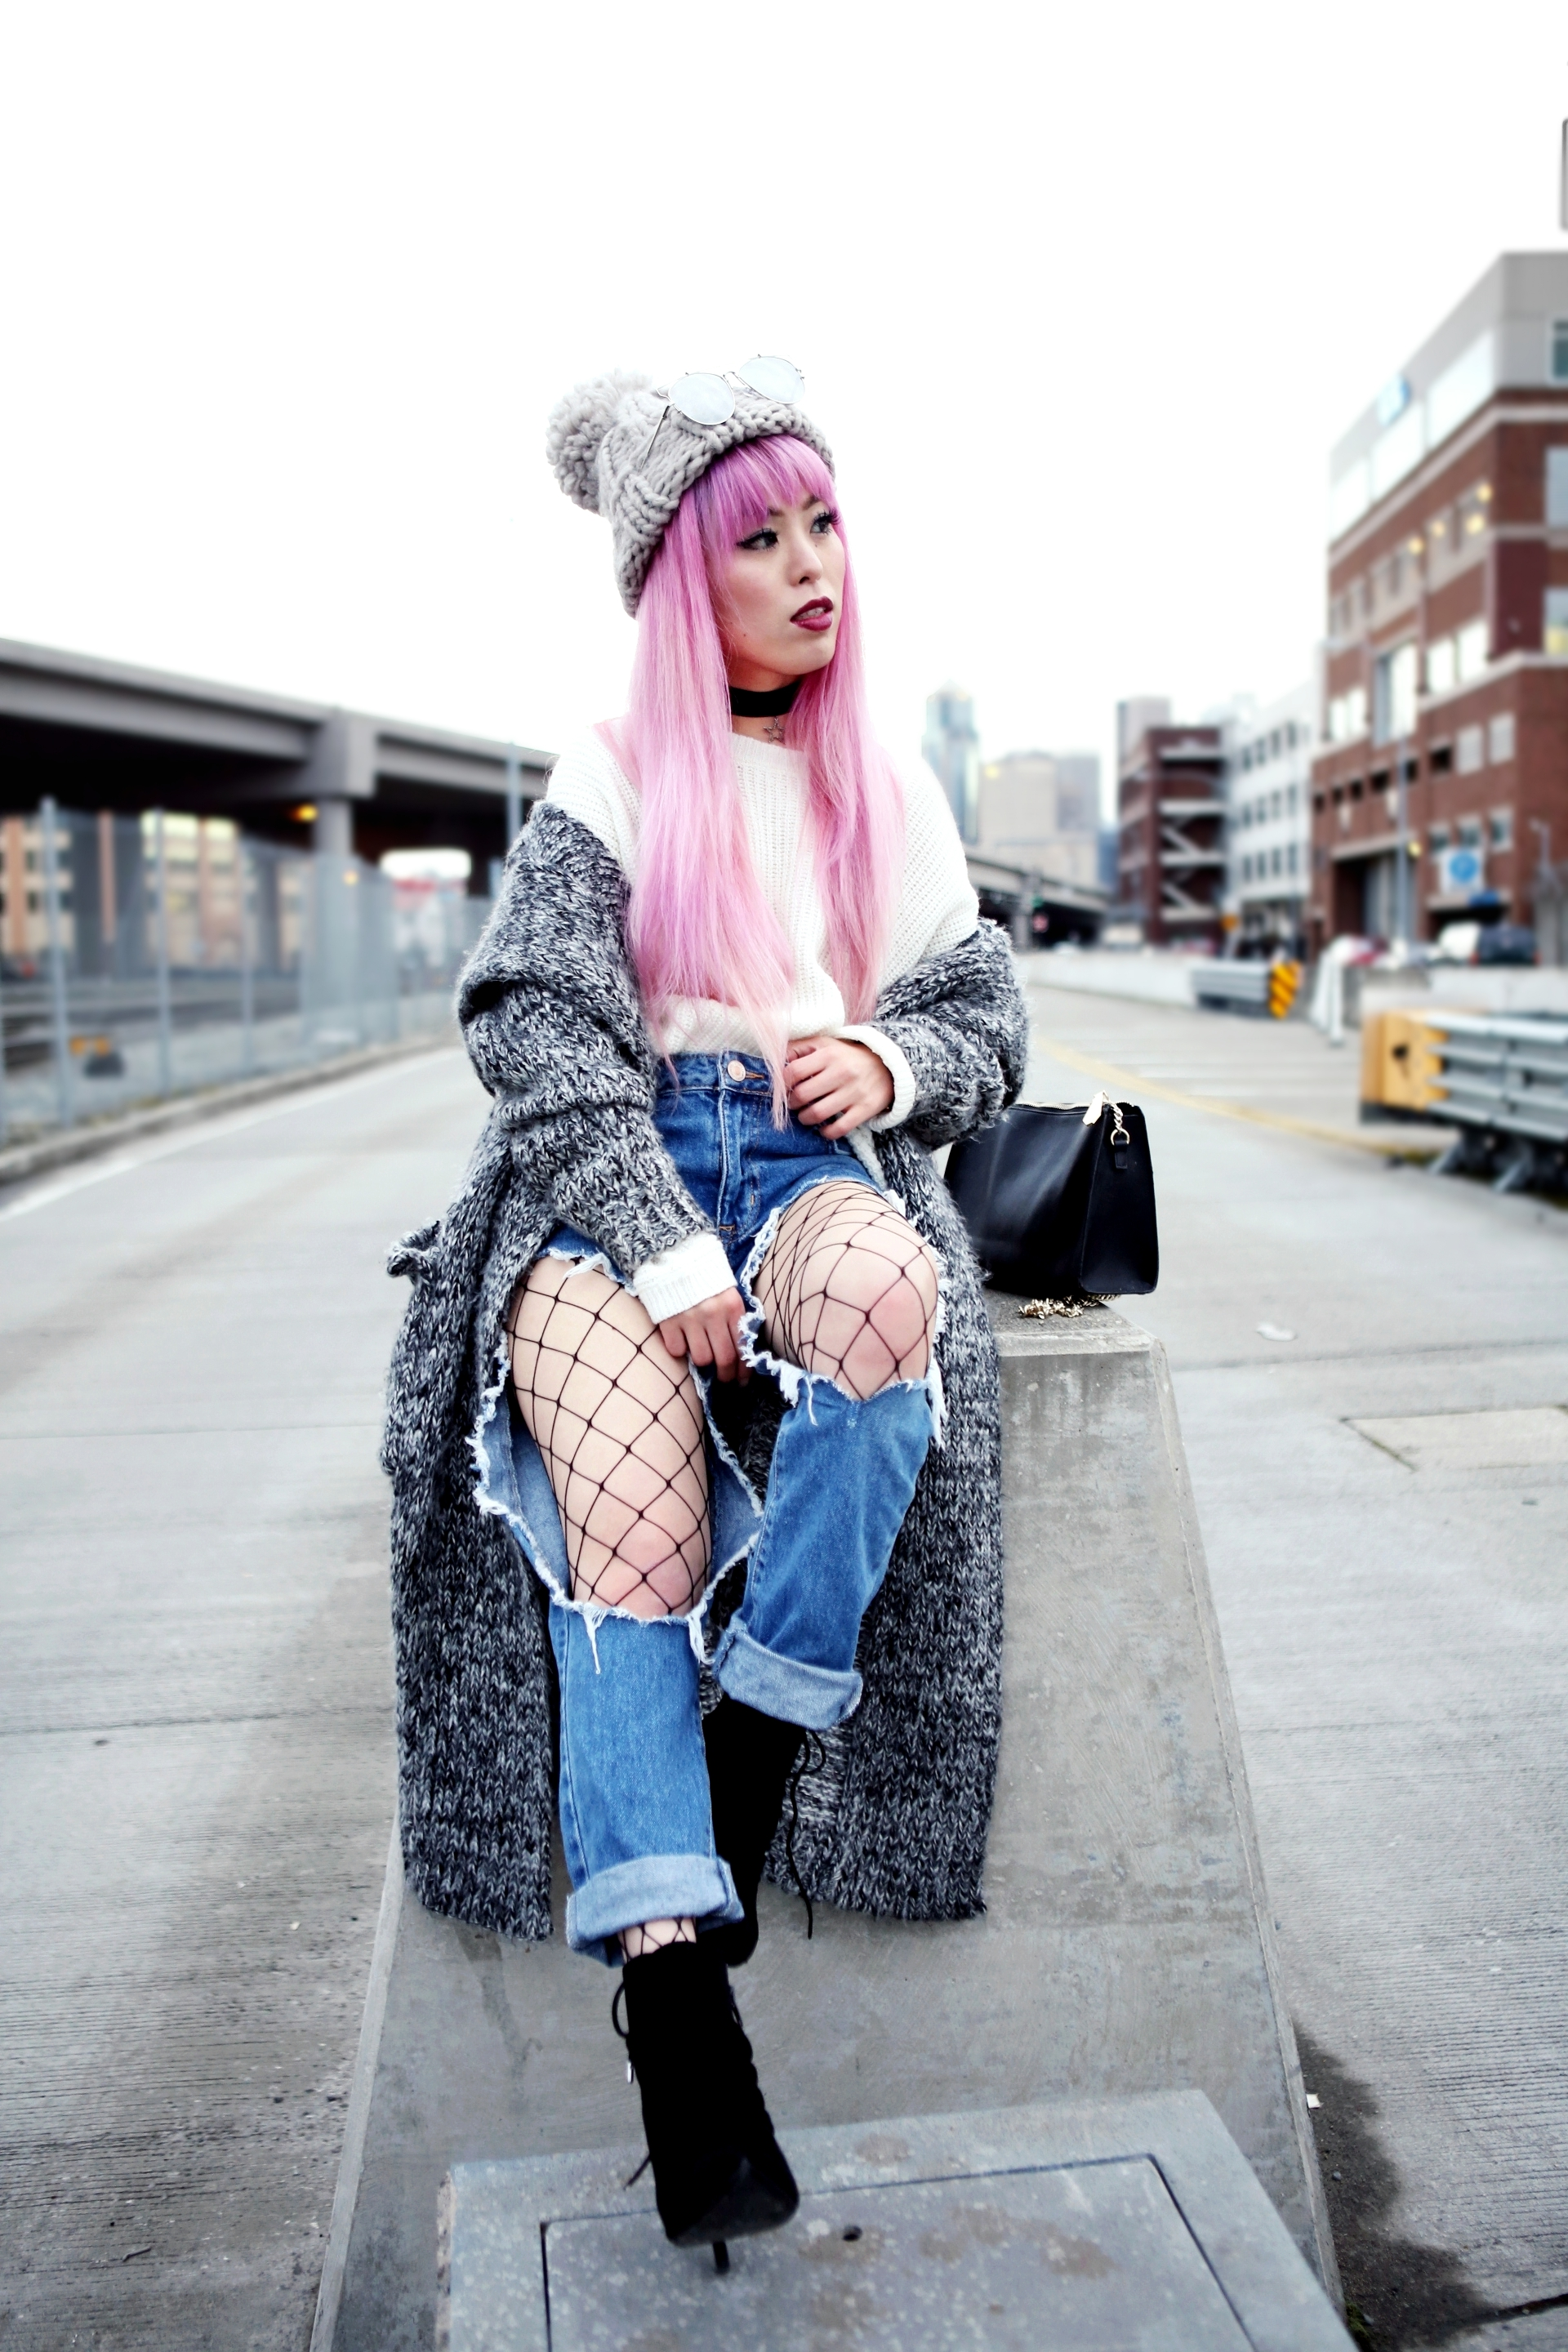 Asos Pom Pom Chunky Beanie_Forever 21 Sweater & Distressed Boyfriend Jeans_ASOS Fishnet Tights_Zara Star Velvet Chocker & Black Lace Up Boots_Gray Chunky Long Cardigan_Free People Mirrored Sunglasses_Pink Hair_Seattle Fashion Style Blogger_Japanese-Aika's Love Closet 5